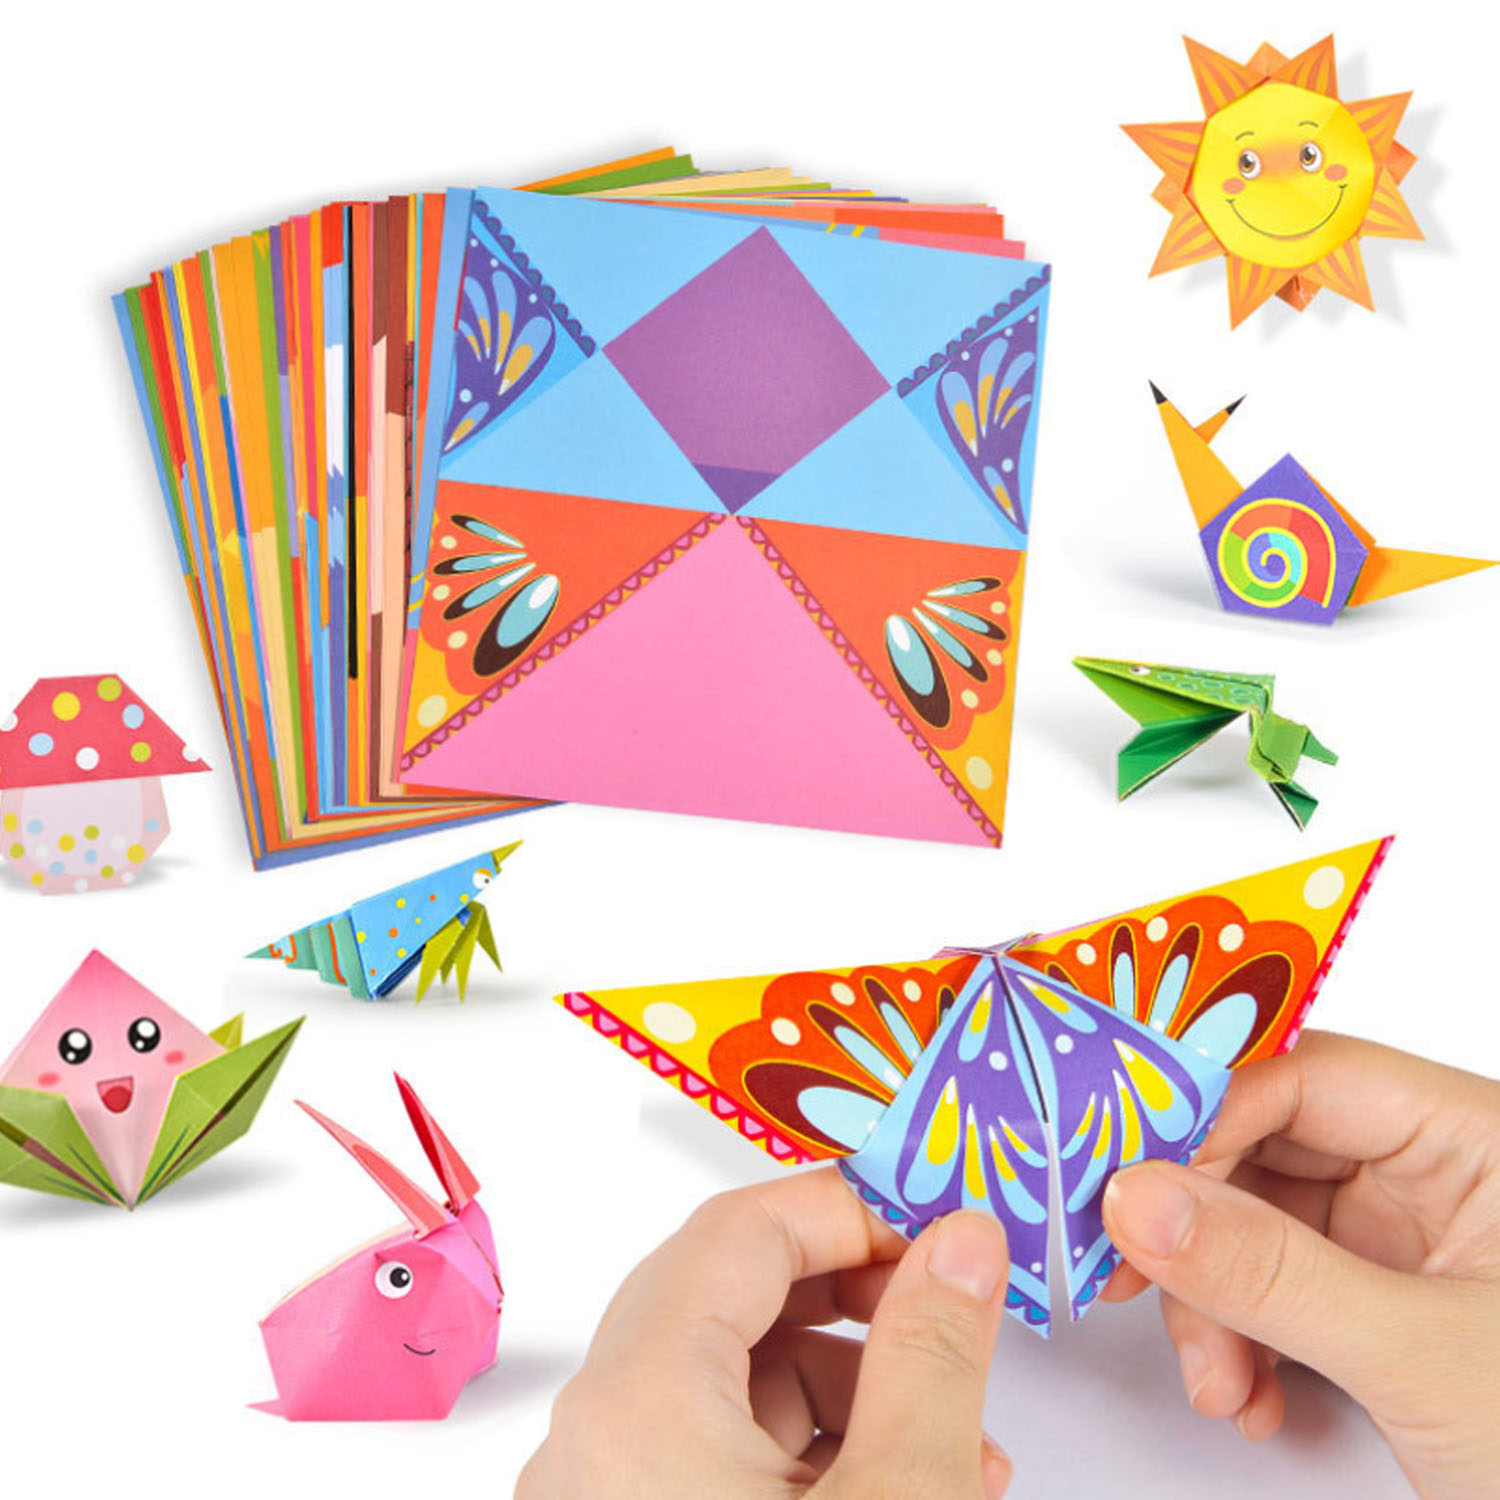 152 Sheets Kids Children Origami Folding Paper For Kindergarten Nursery School DIY Crafts Art Projects Early Educational Toy